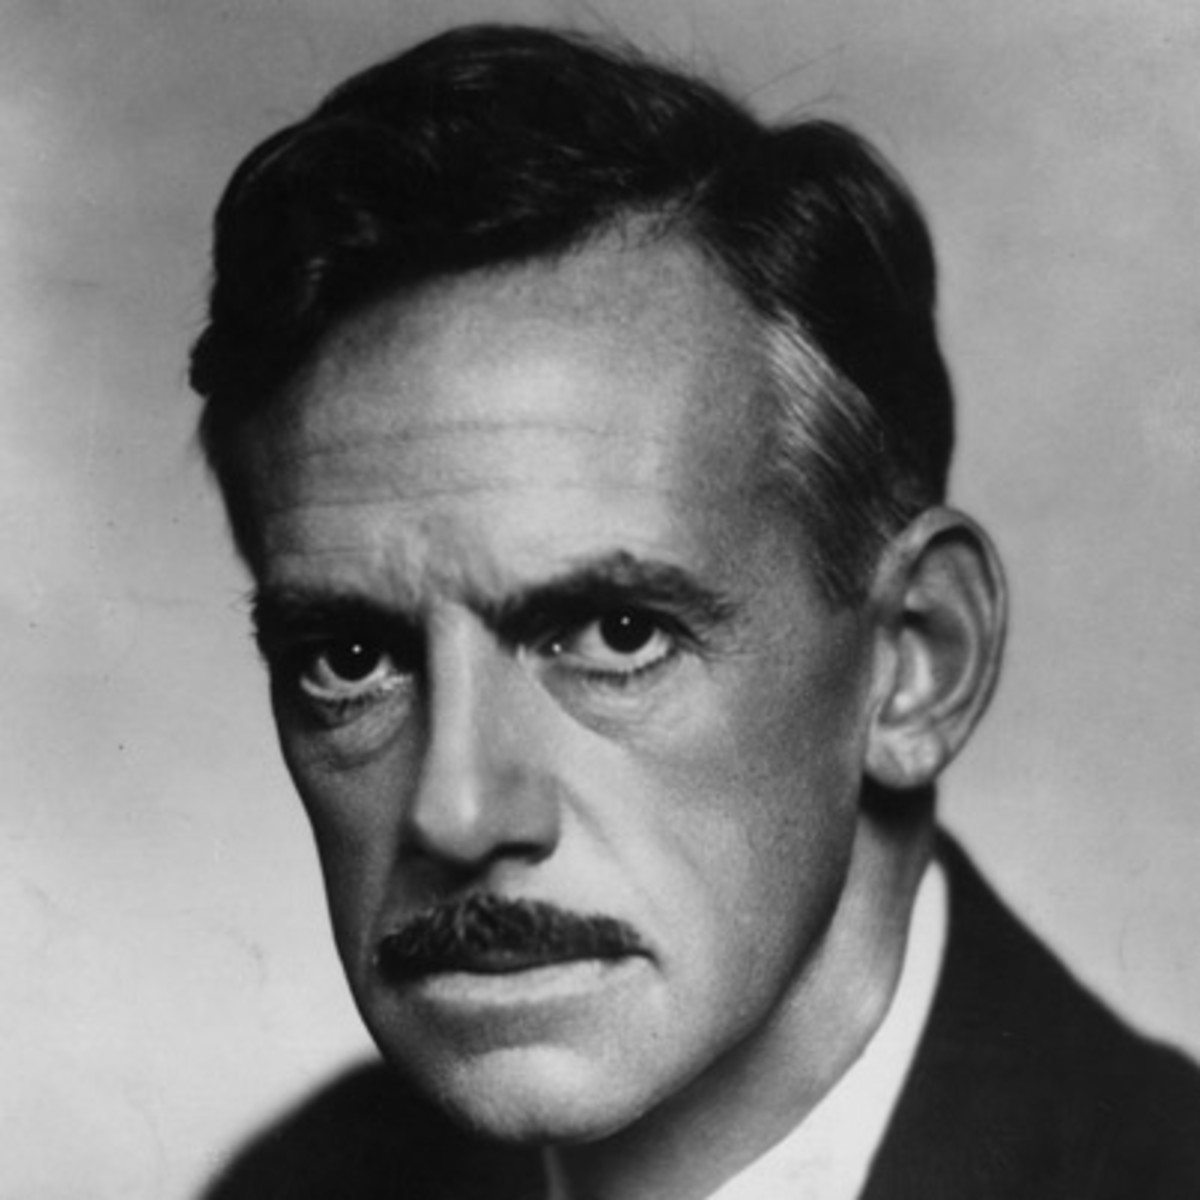 eugene o'neill and the the rebirth A bortionmade its stage debut in new york in 1959, six years after eugene o'neill's death it was not a critical success arthur gelb, who would go on.